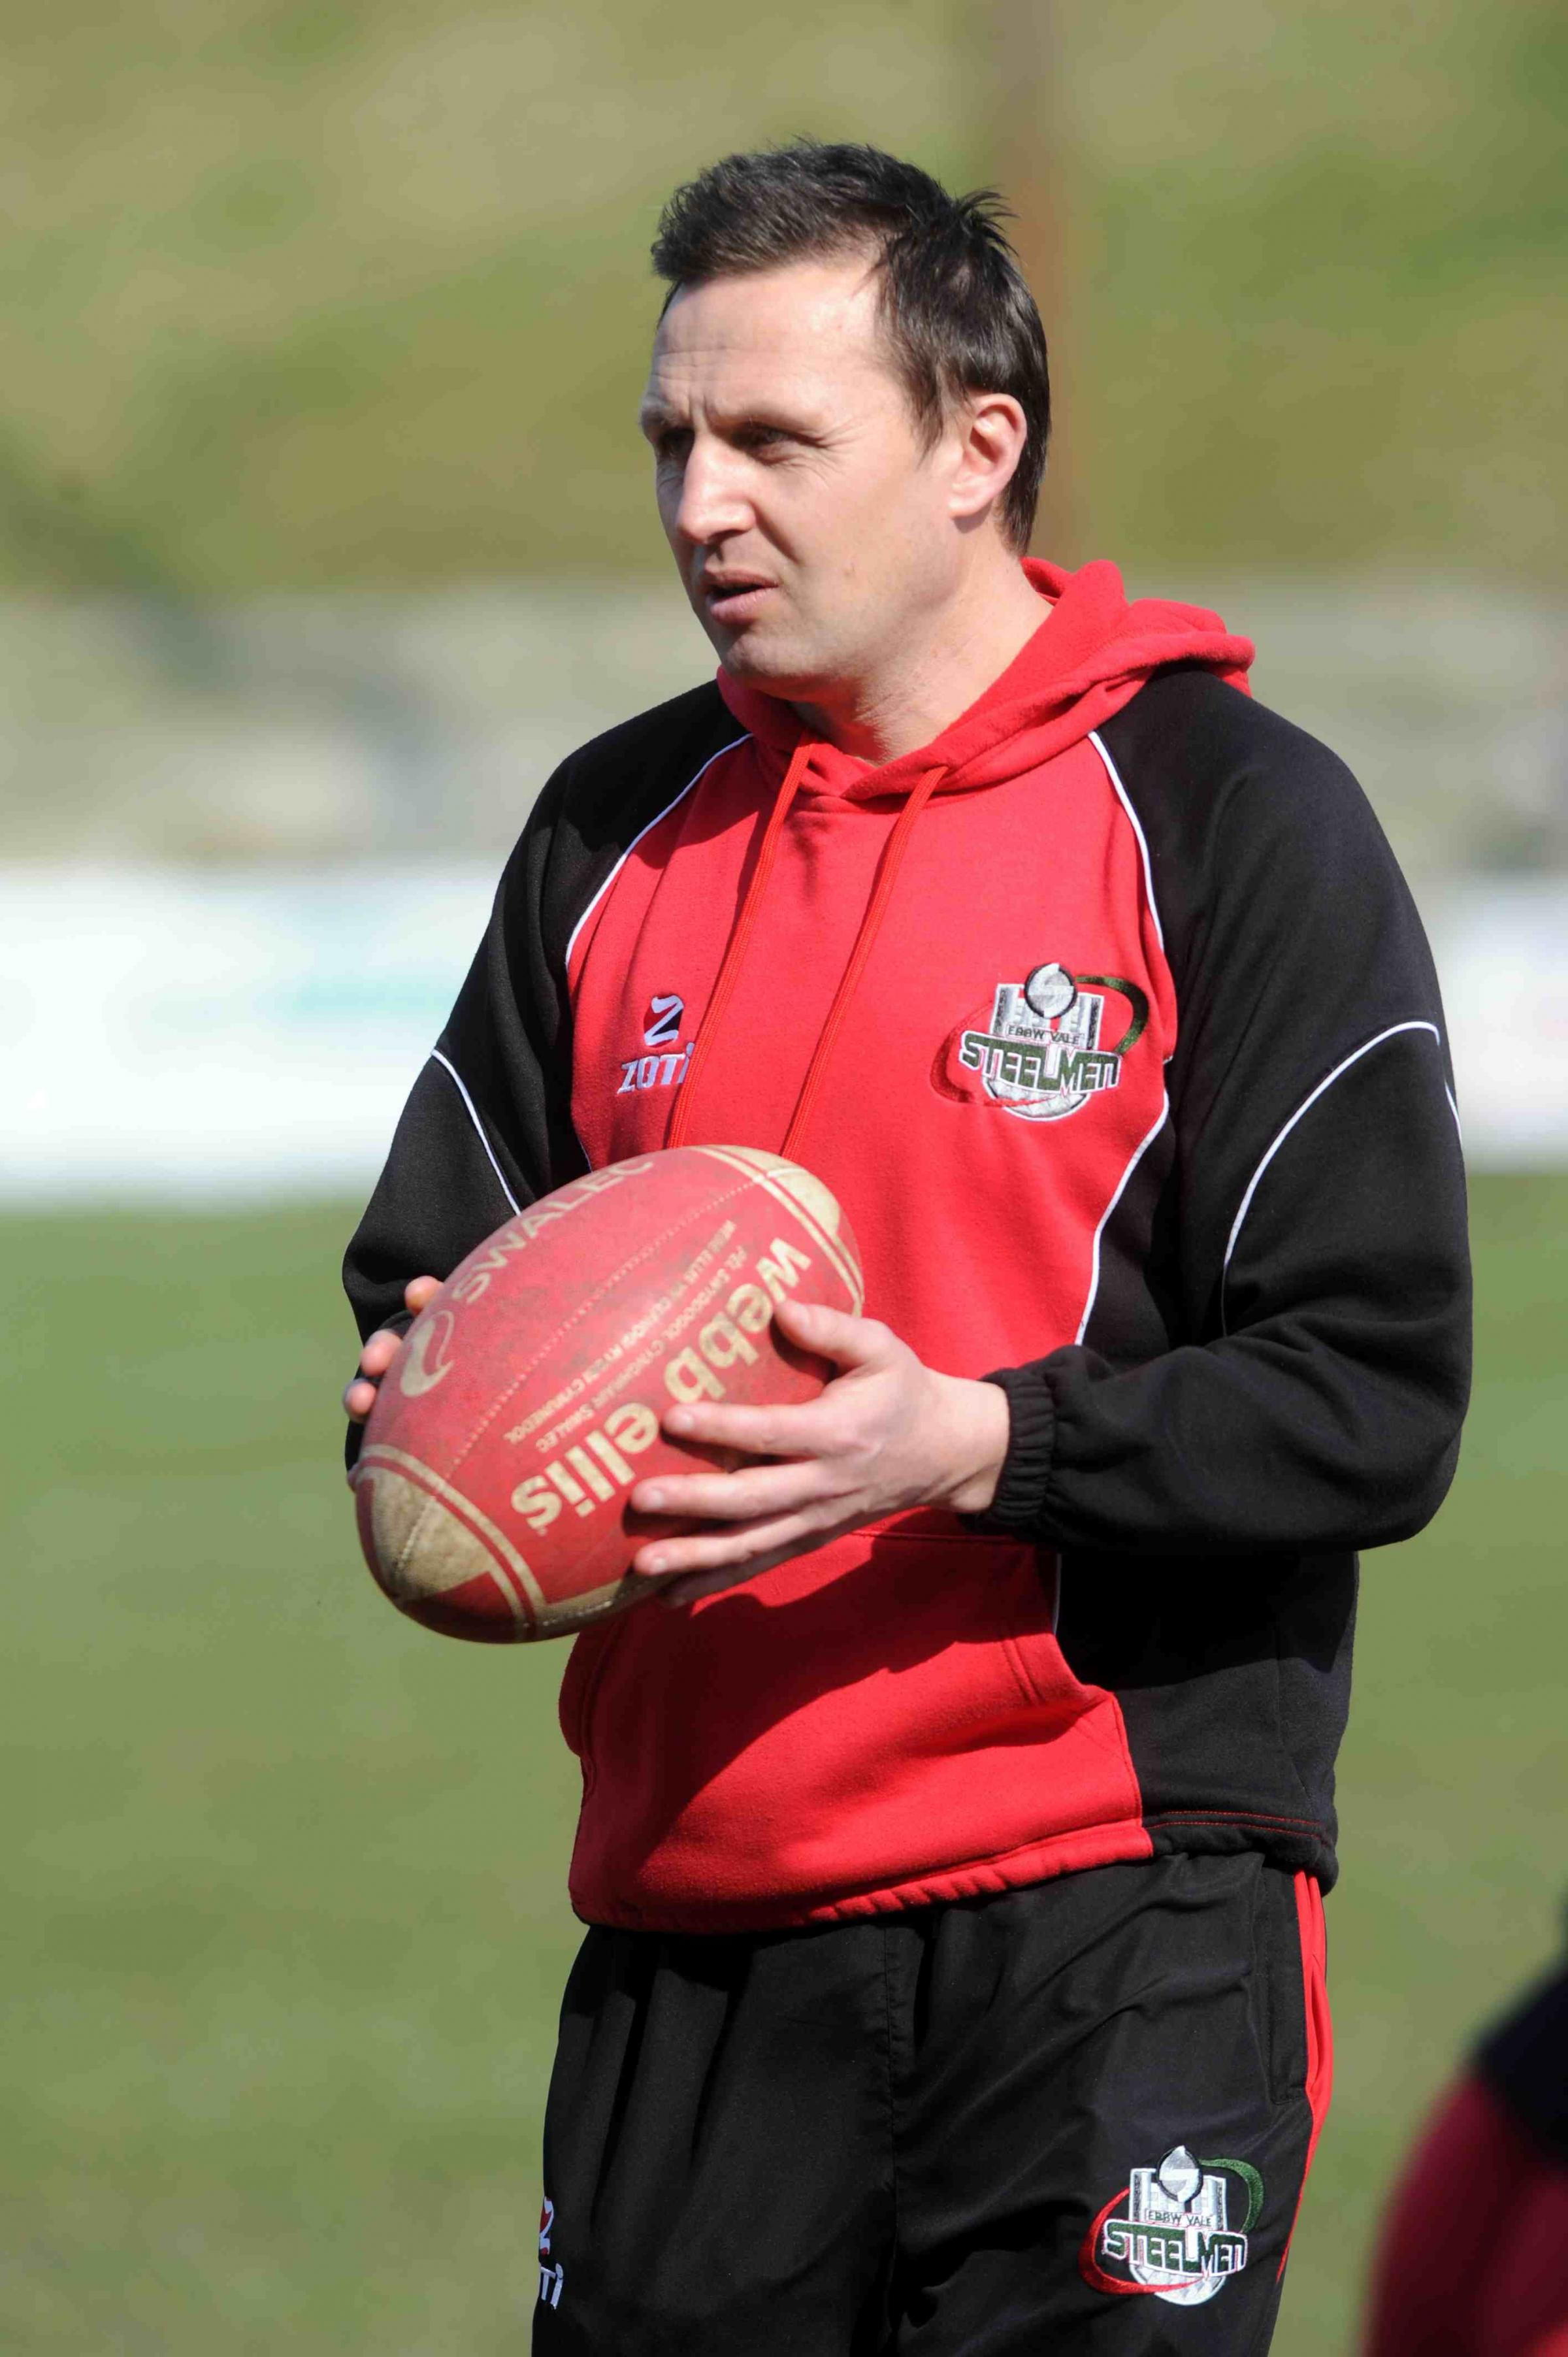 Jason Strange leaves Ebbw Vale for WRU role